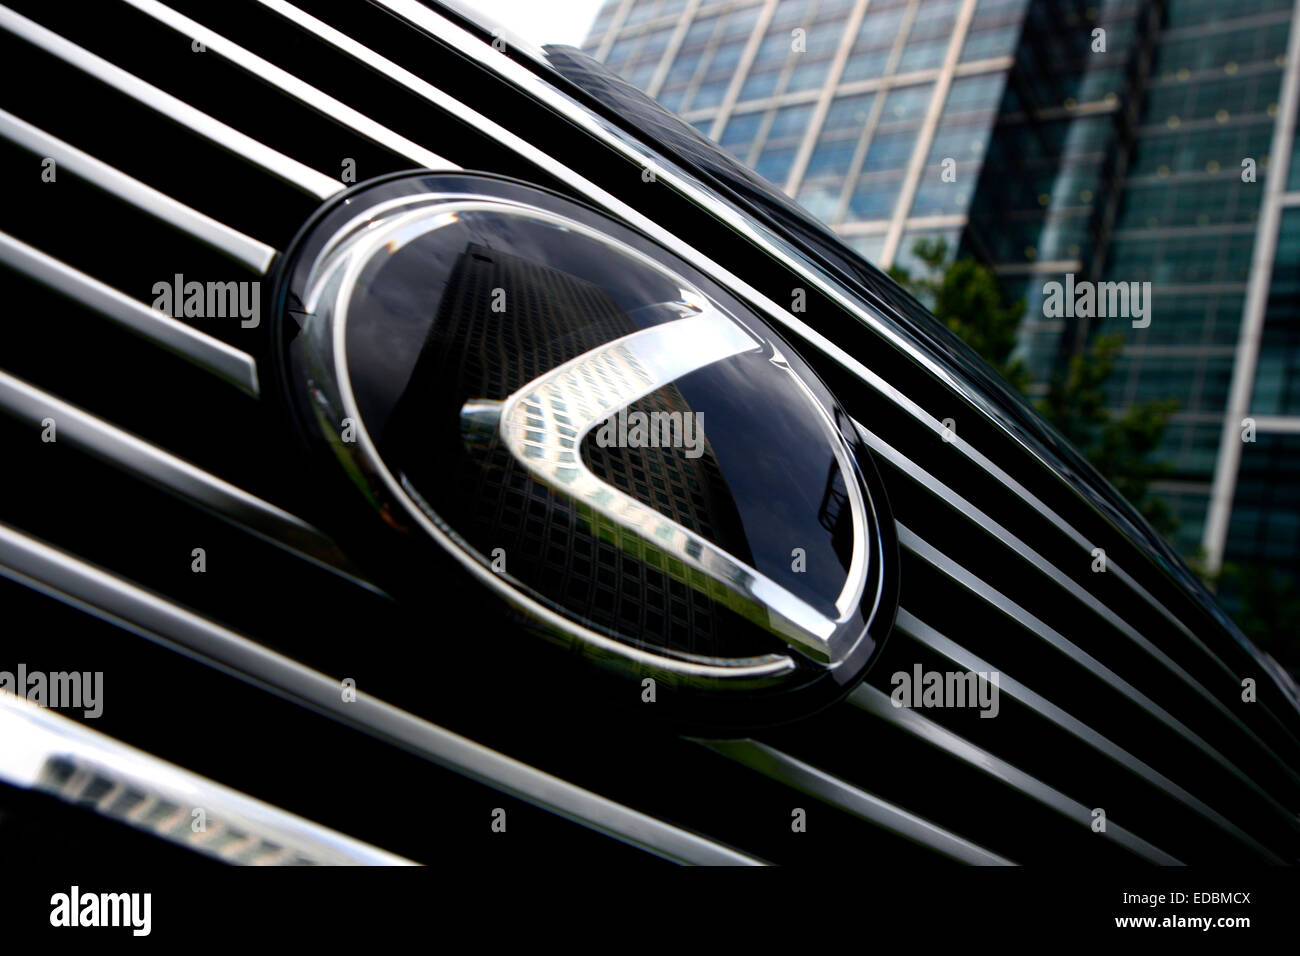 Picture shows a highly polished Lexus in Canary Wharf, London. With the emblem reflecting the One Canada Square - Stock Image